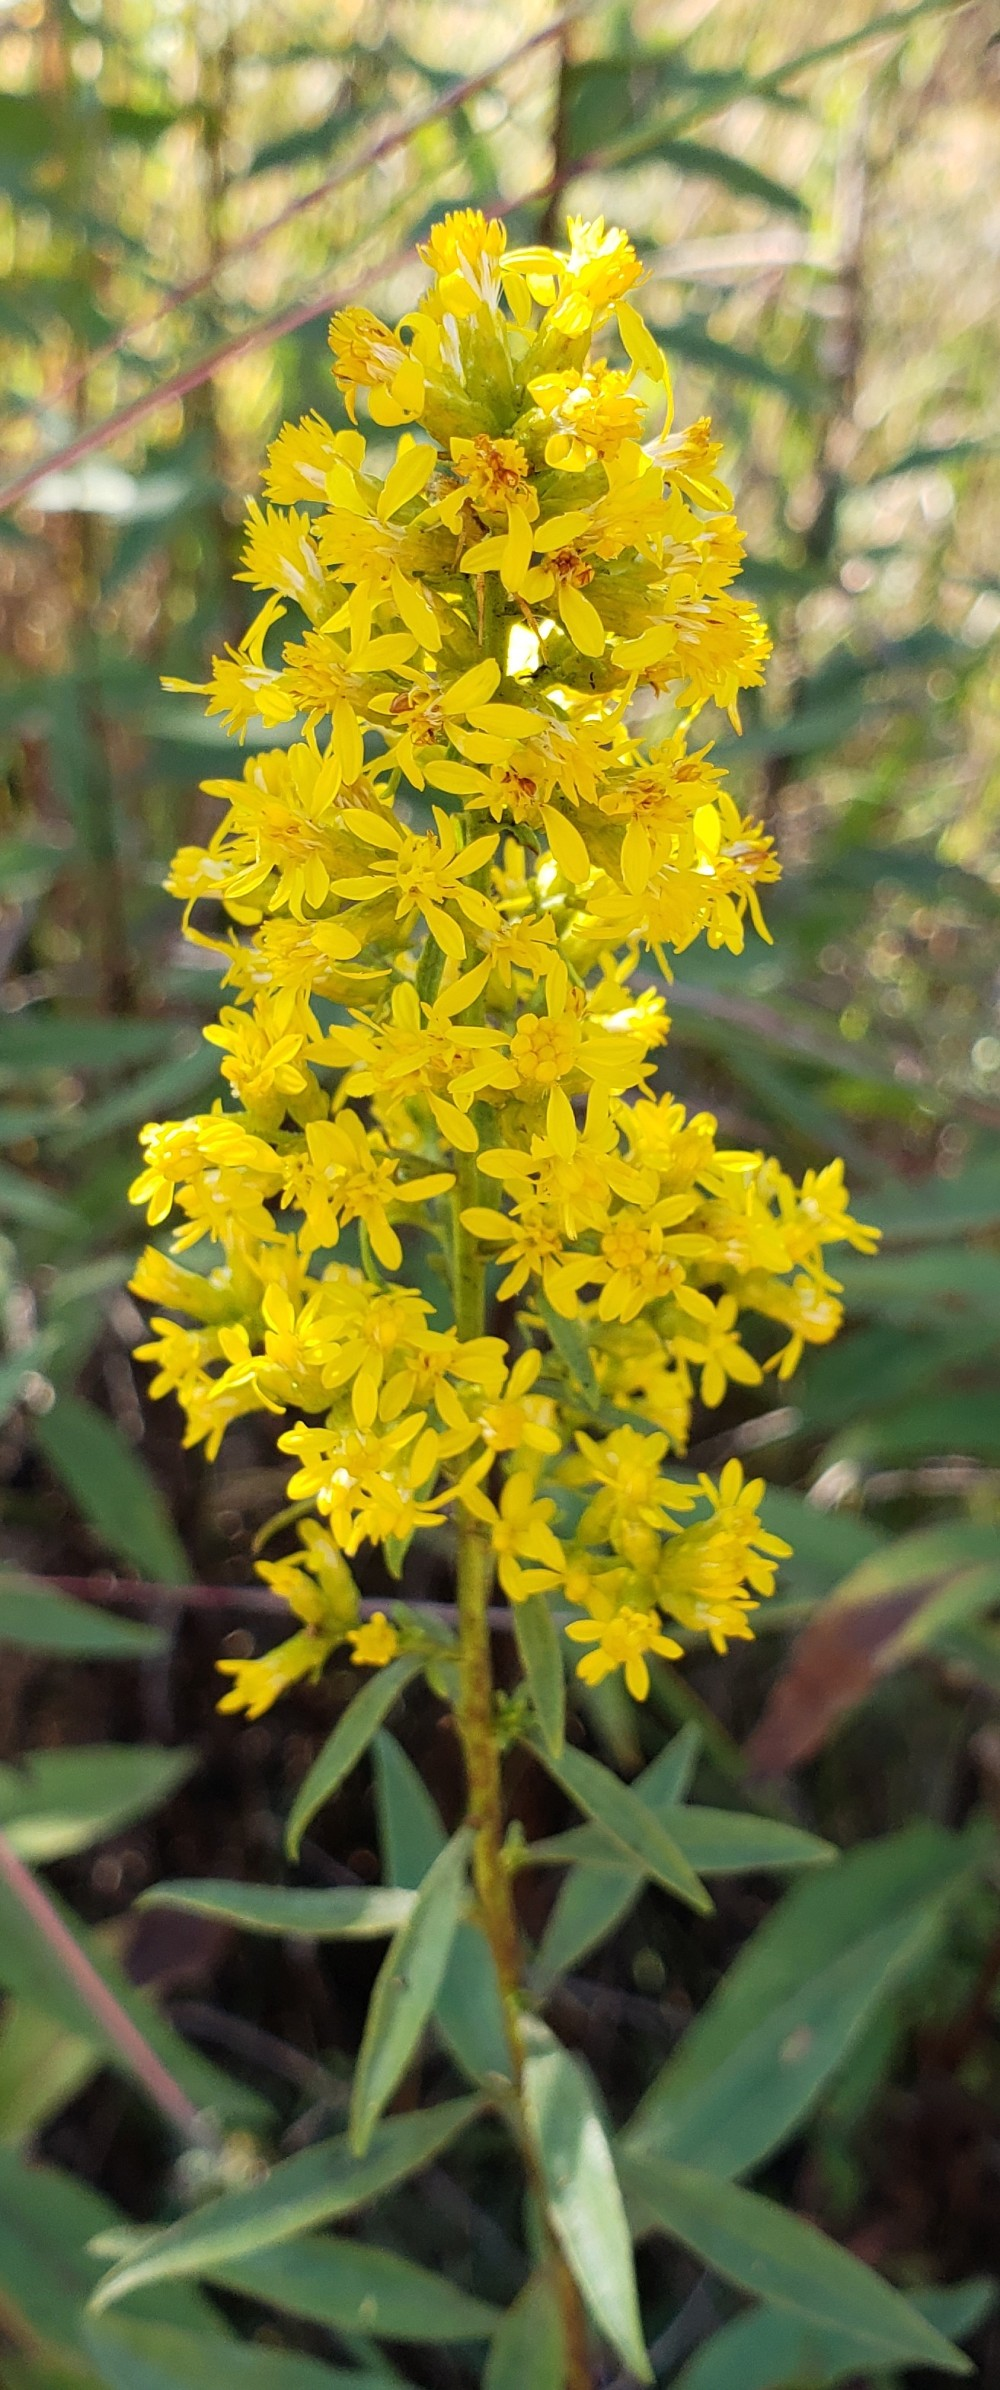 20180916_111013 showy goldenrod cropped